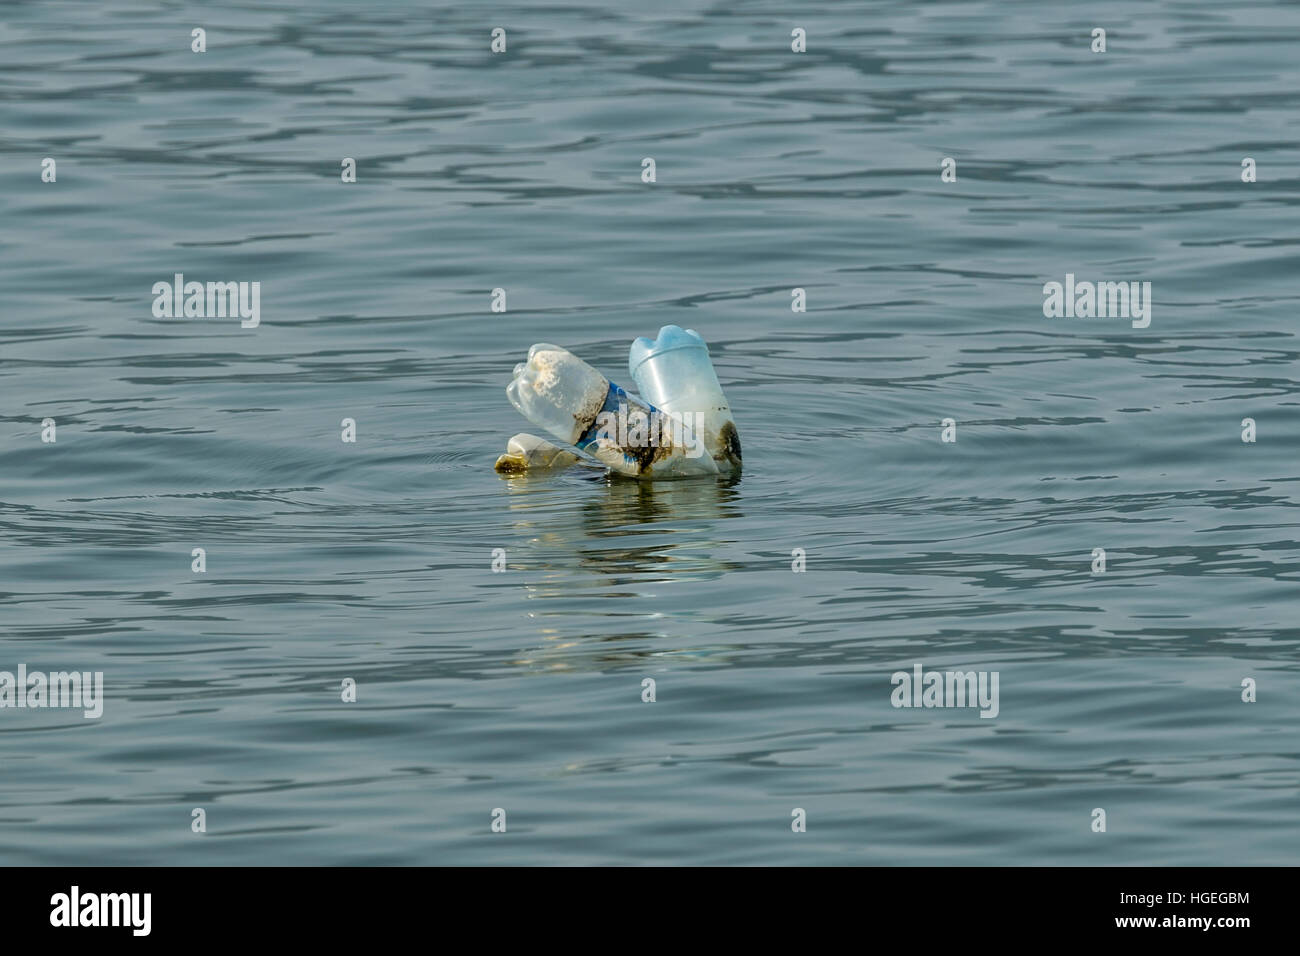 Plastic bottles that float the river Danube - Stock Image